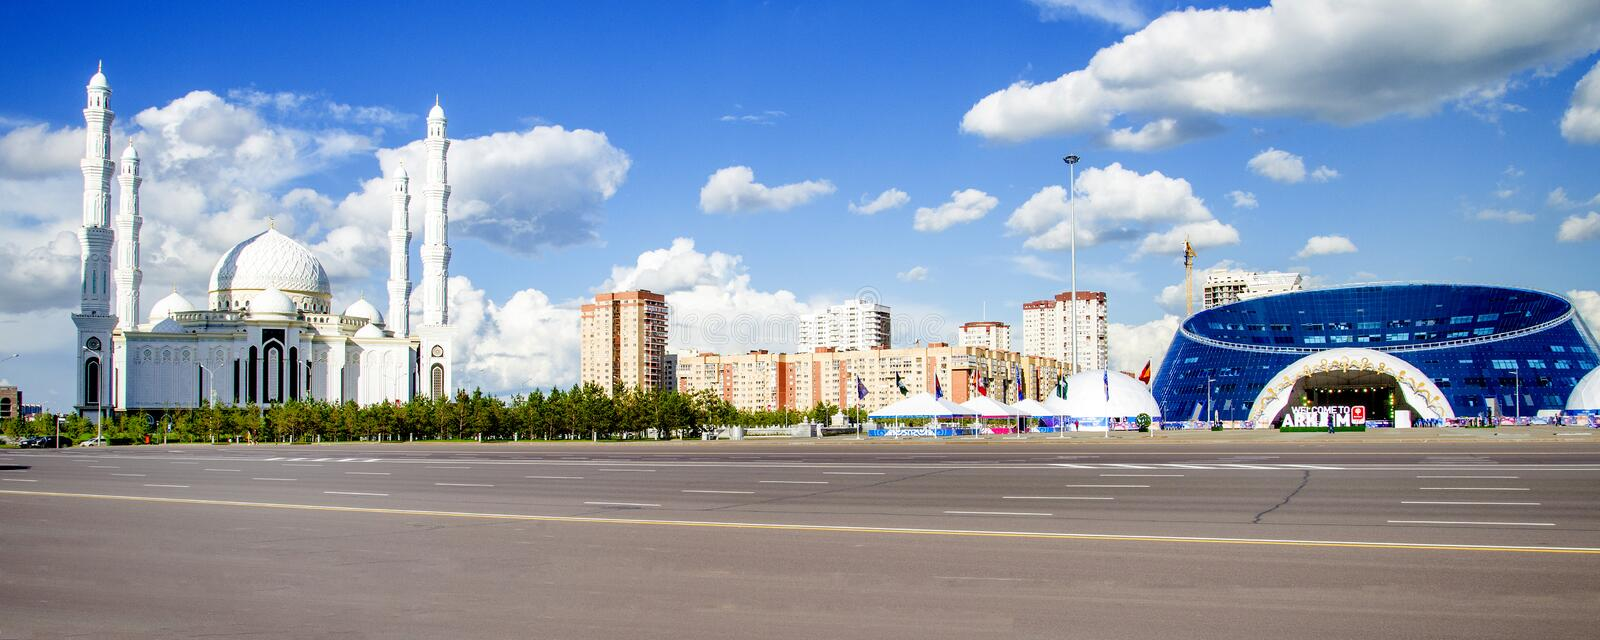 The monument Kazakh Eli in Astana city. royalty free stock image